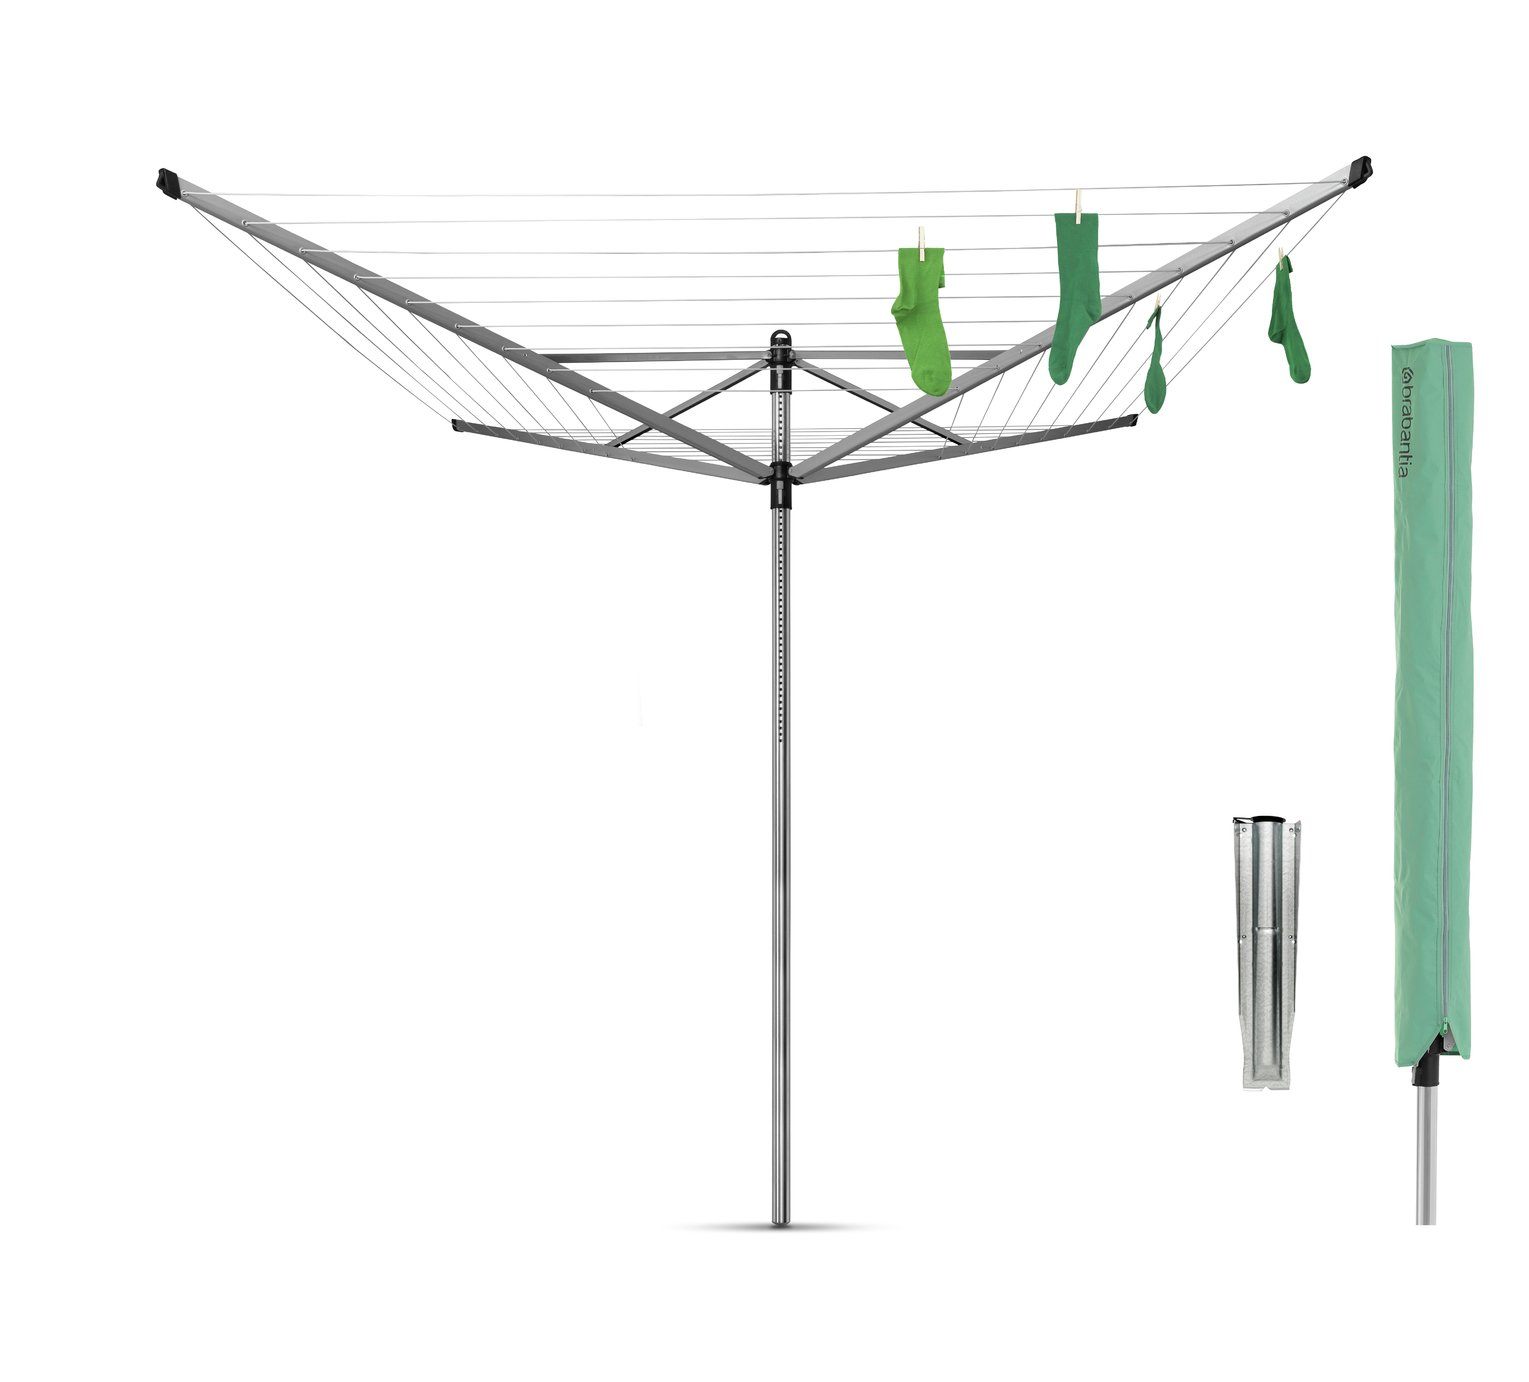 Brabantia 60m Lift-O-Matic Outdoor Washing Line with Cover